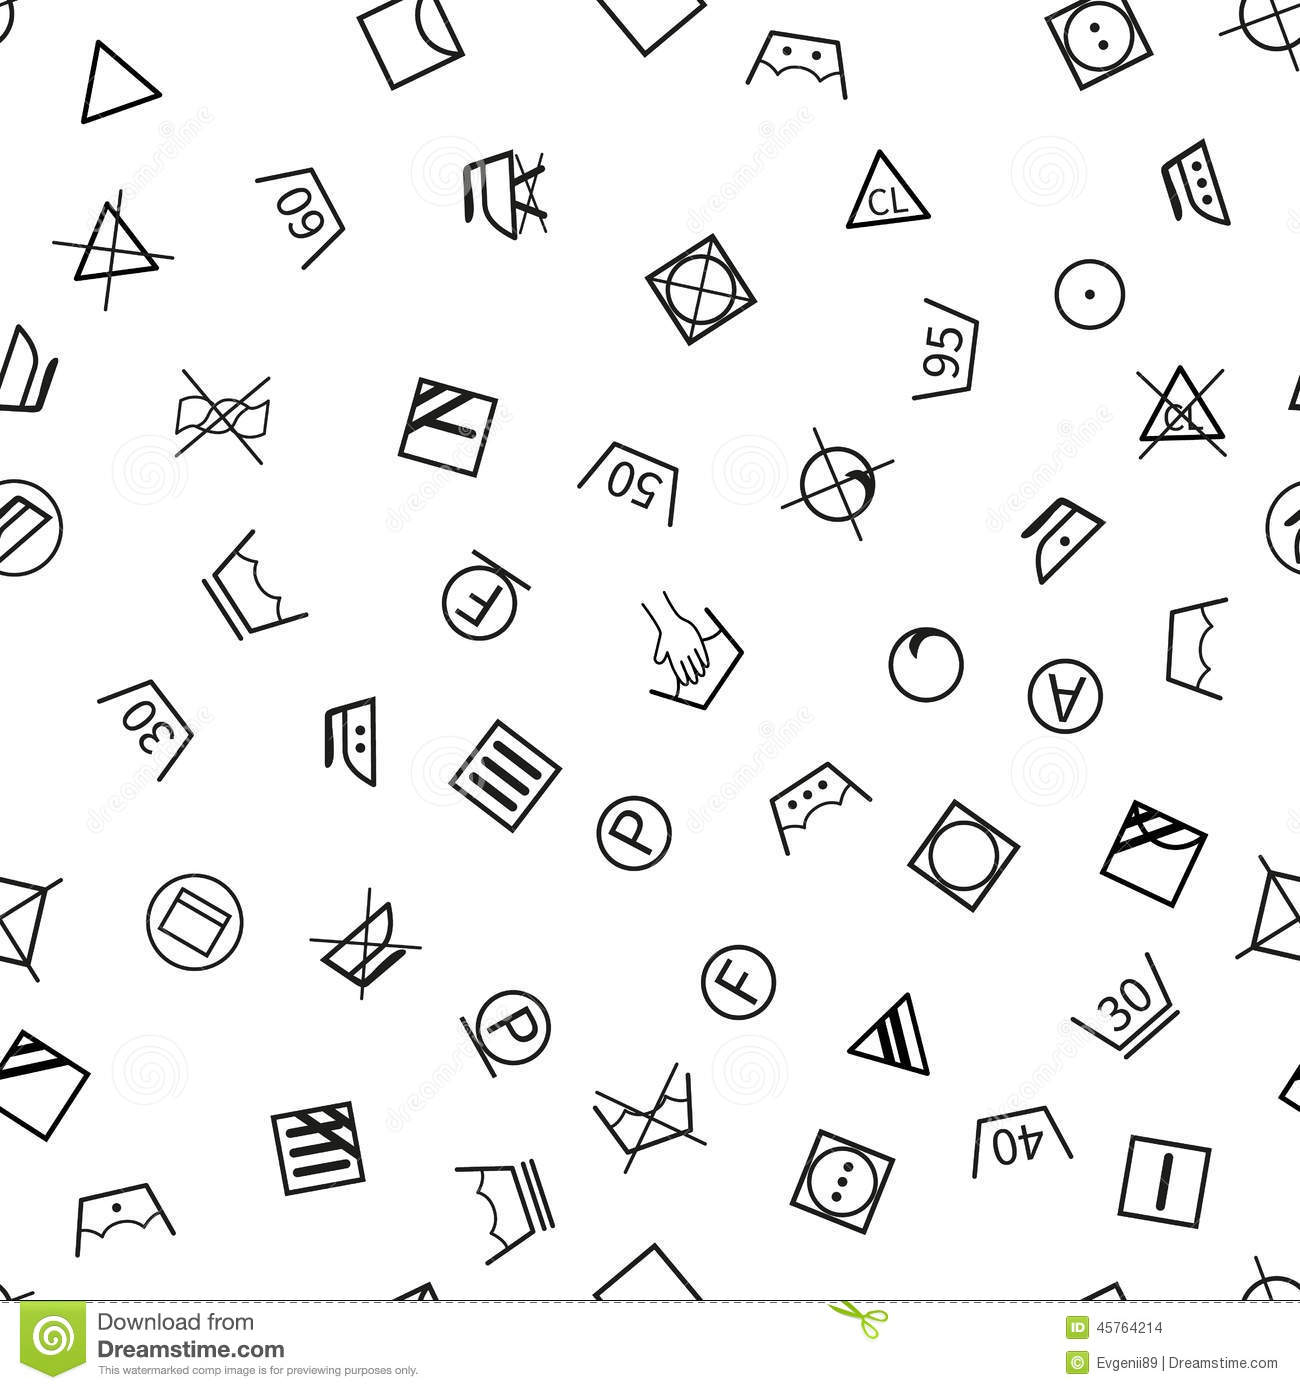 Laundry Symbols On White Background Seamless Stock Vector